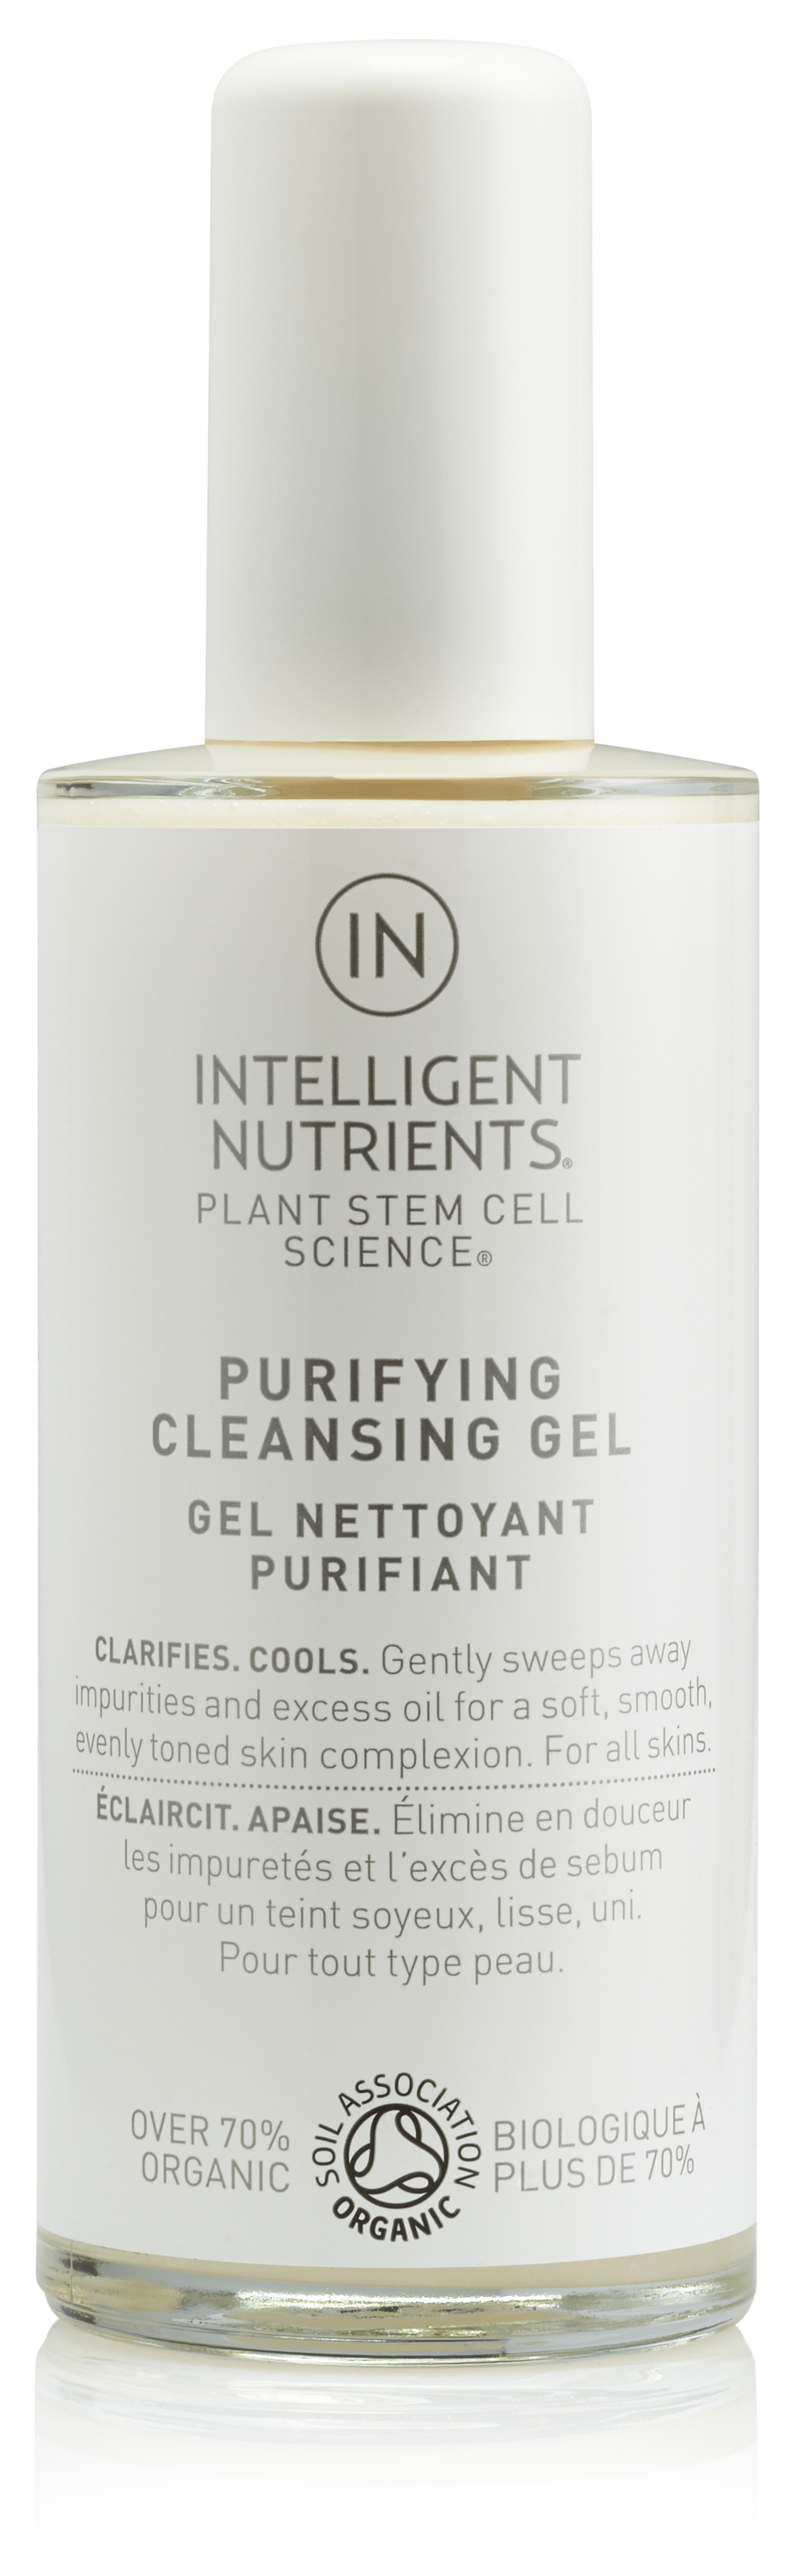 Purifying Cleansing Gel (DKK345/97ml)